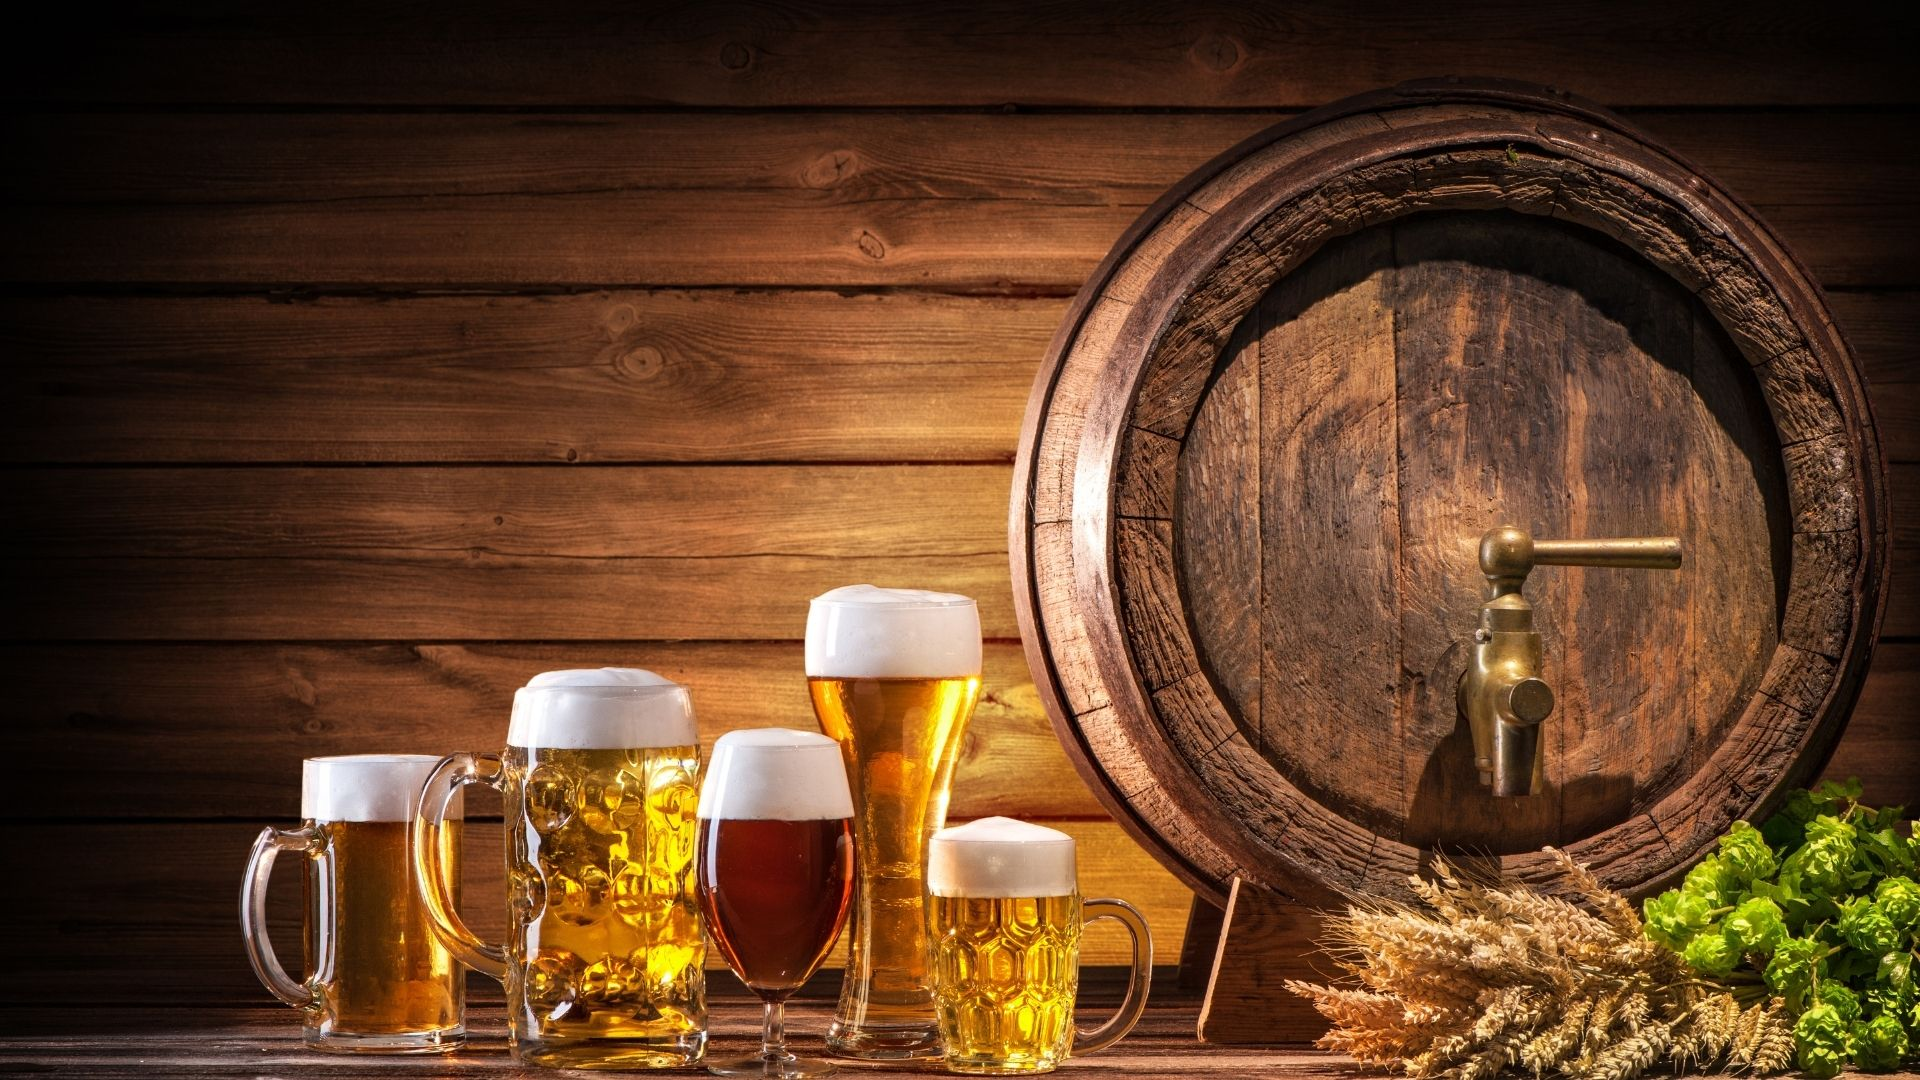 A barrel and several kinds of craft beer